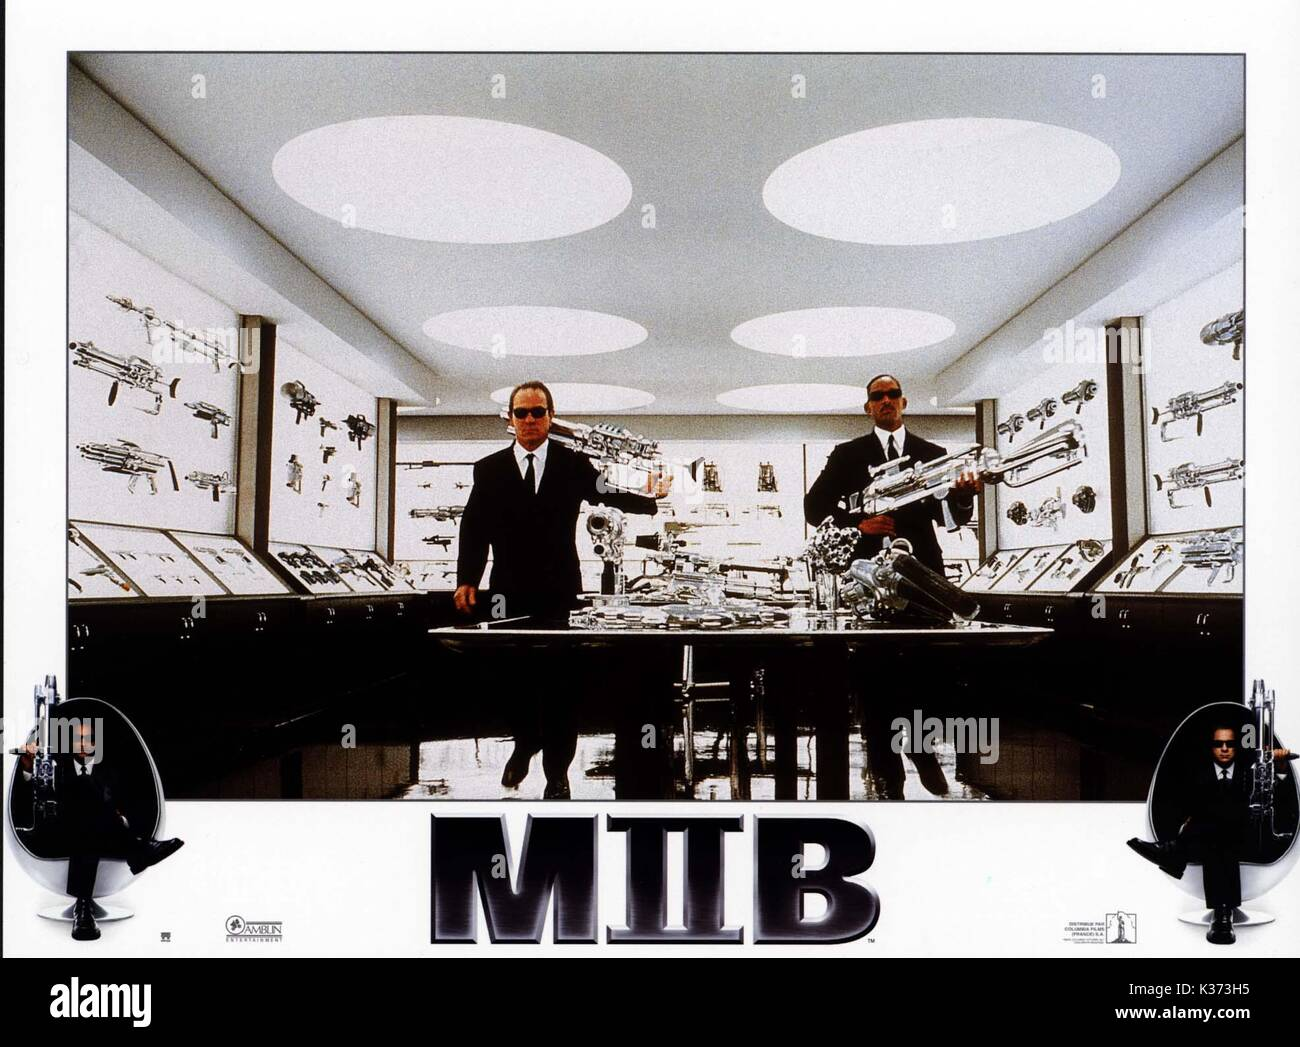 Men In Black Ii Tommy Lee Jones And Will Smith Date 2002 Stock Photo Alamy